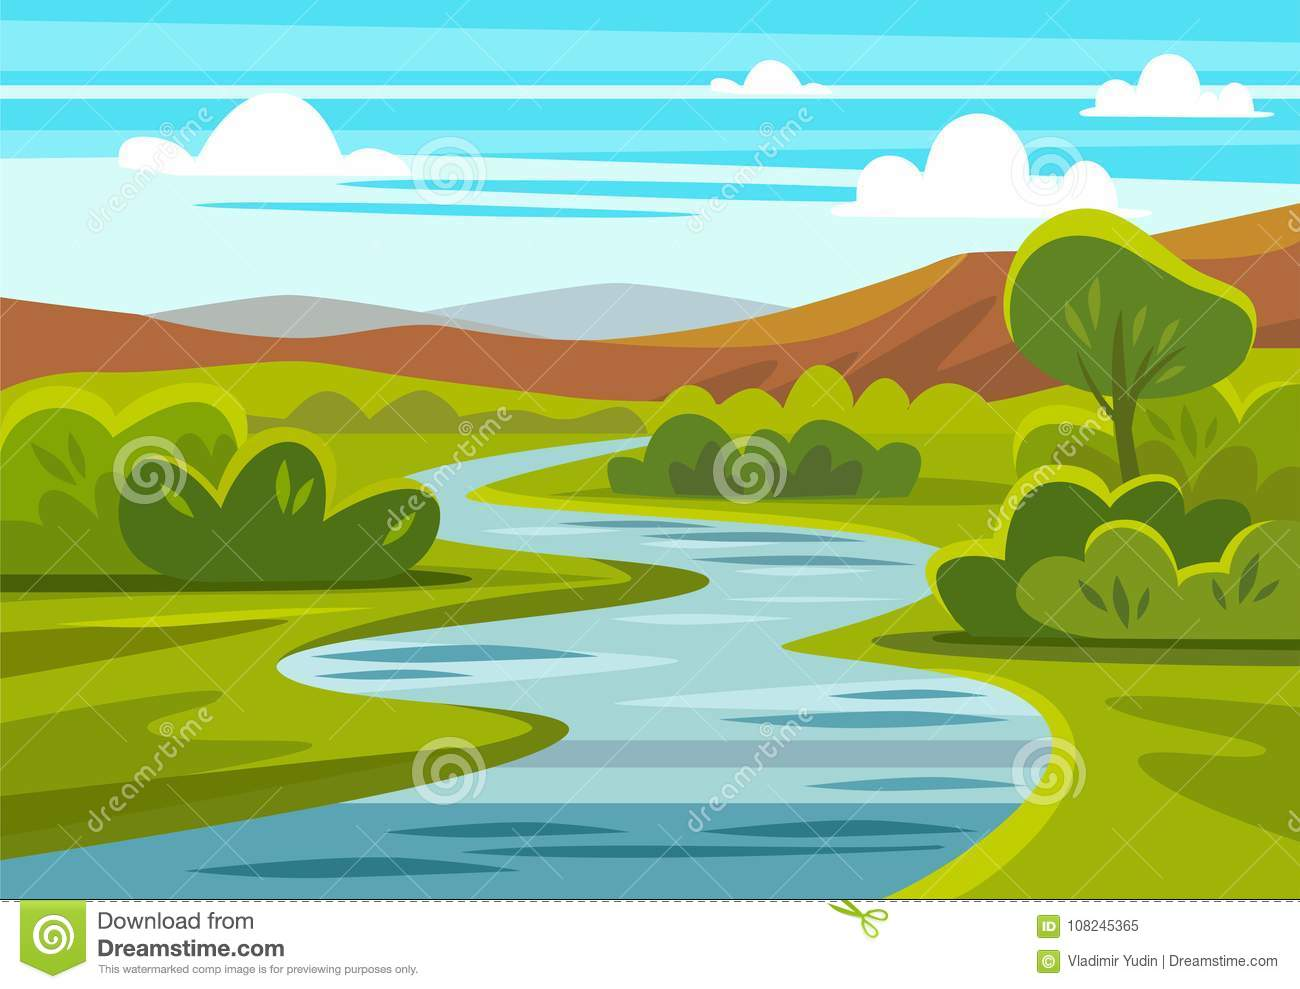 Cartoon Landscape With Mountains, River And Trees. Stock